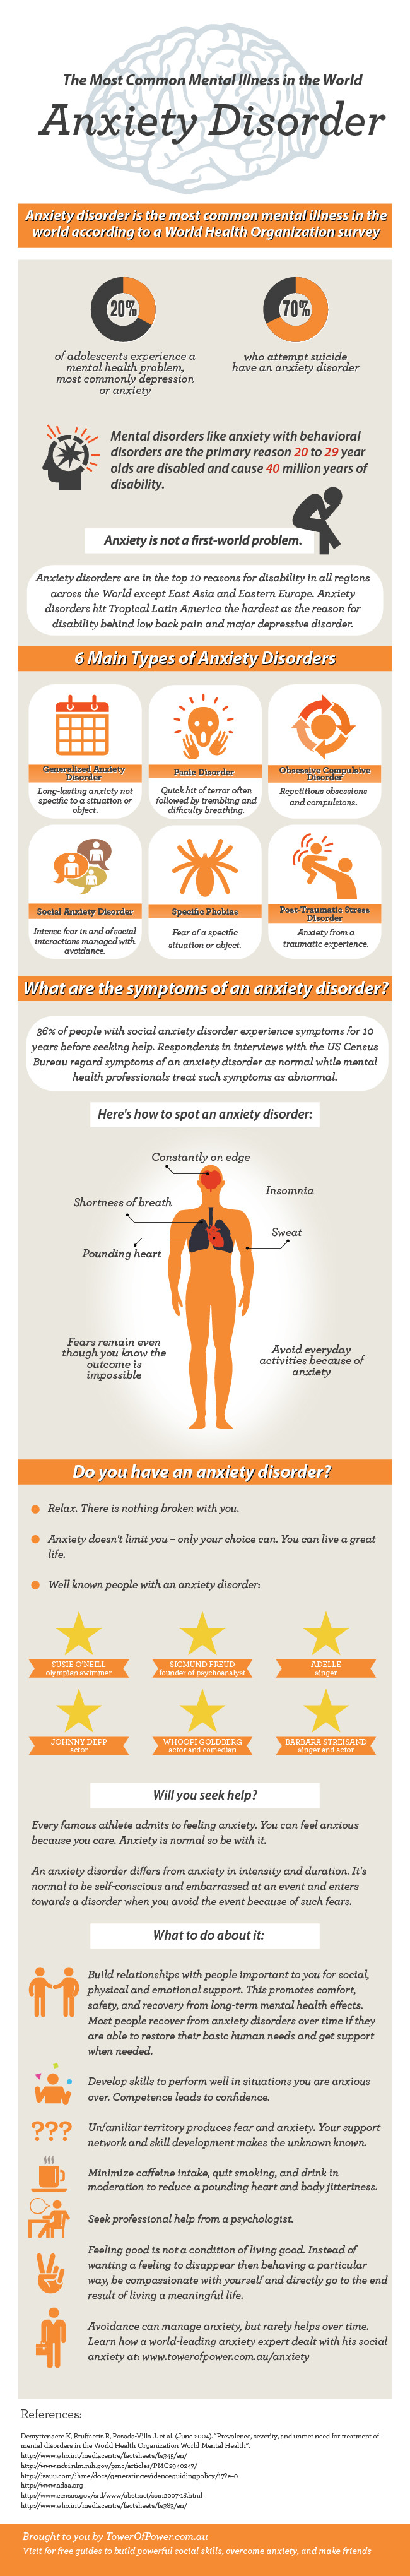 anxiety-disordernewinfographic